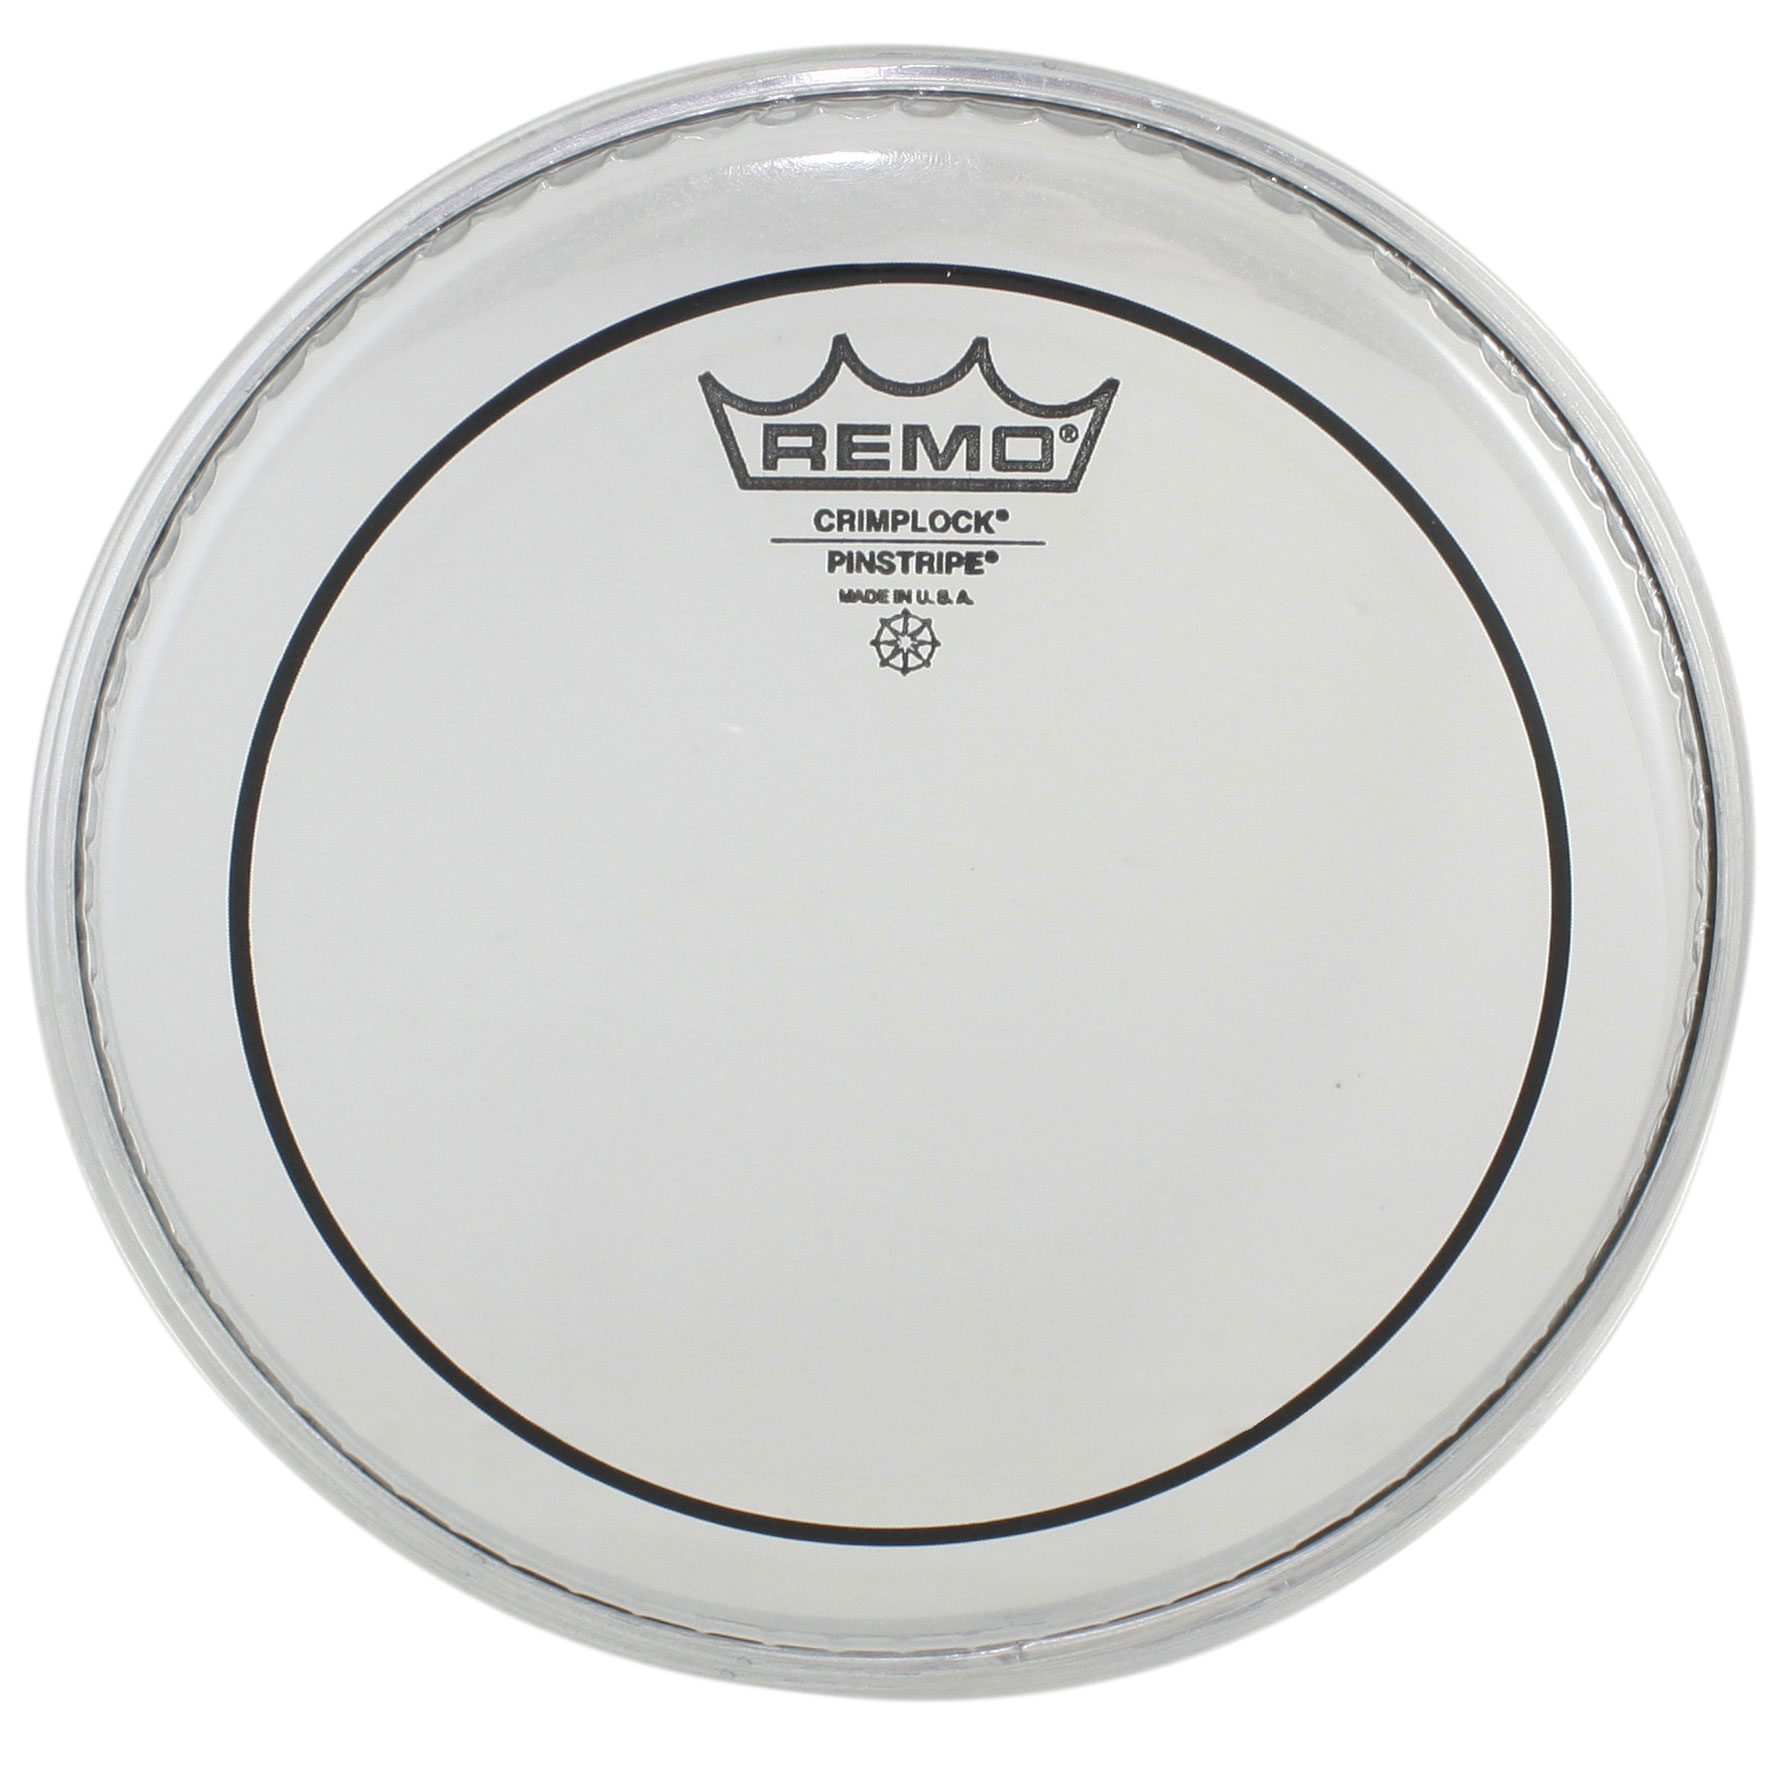 "Remo 6"" Pinstripe Clear Crimplock Marching Tenor Drum Head"